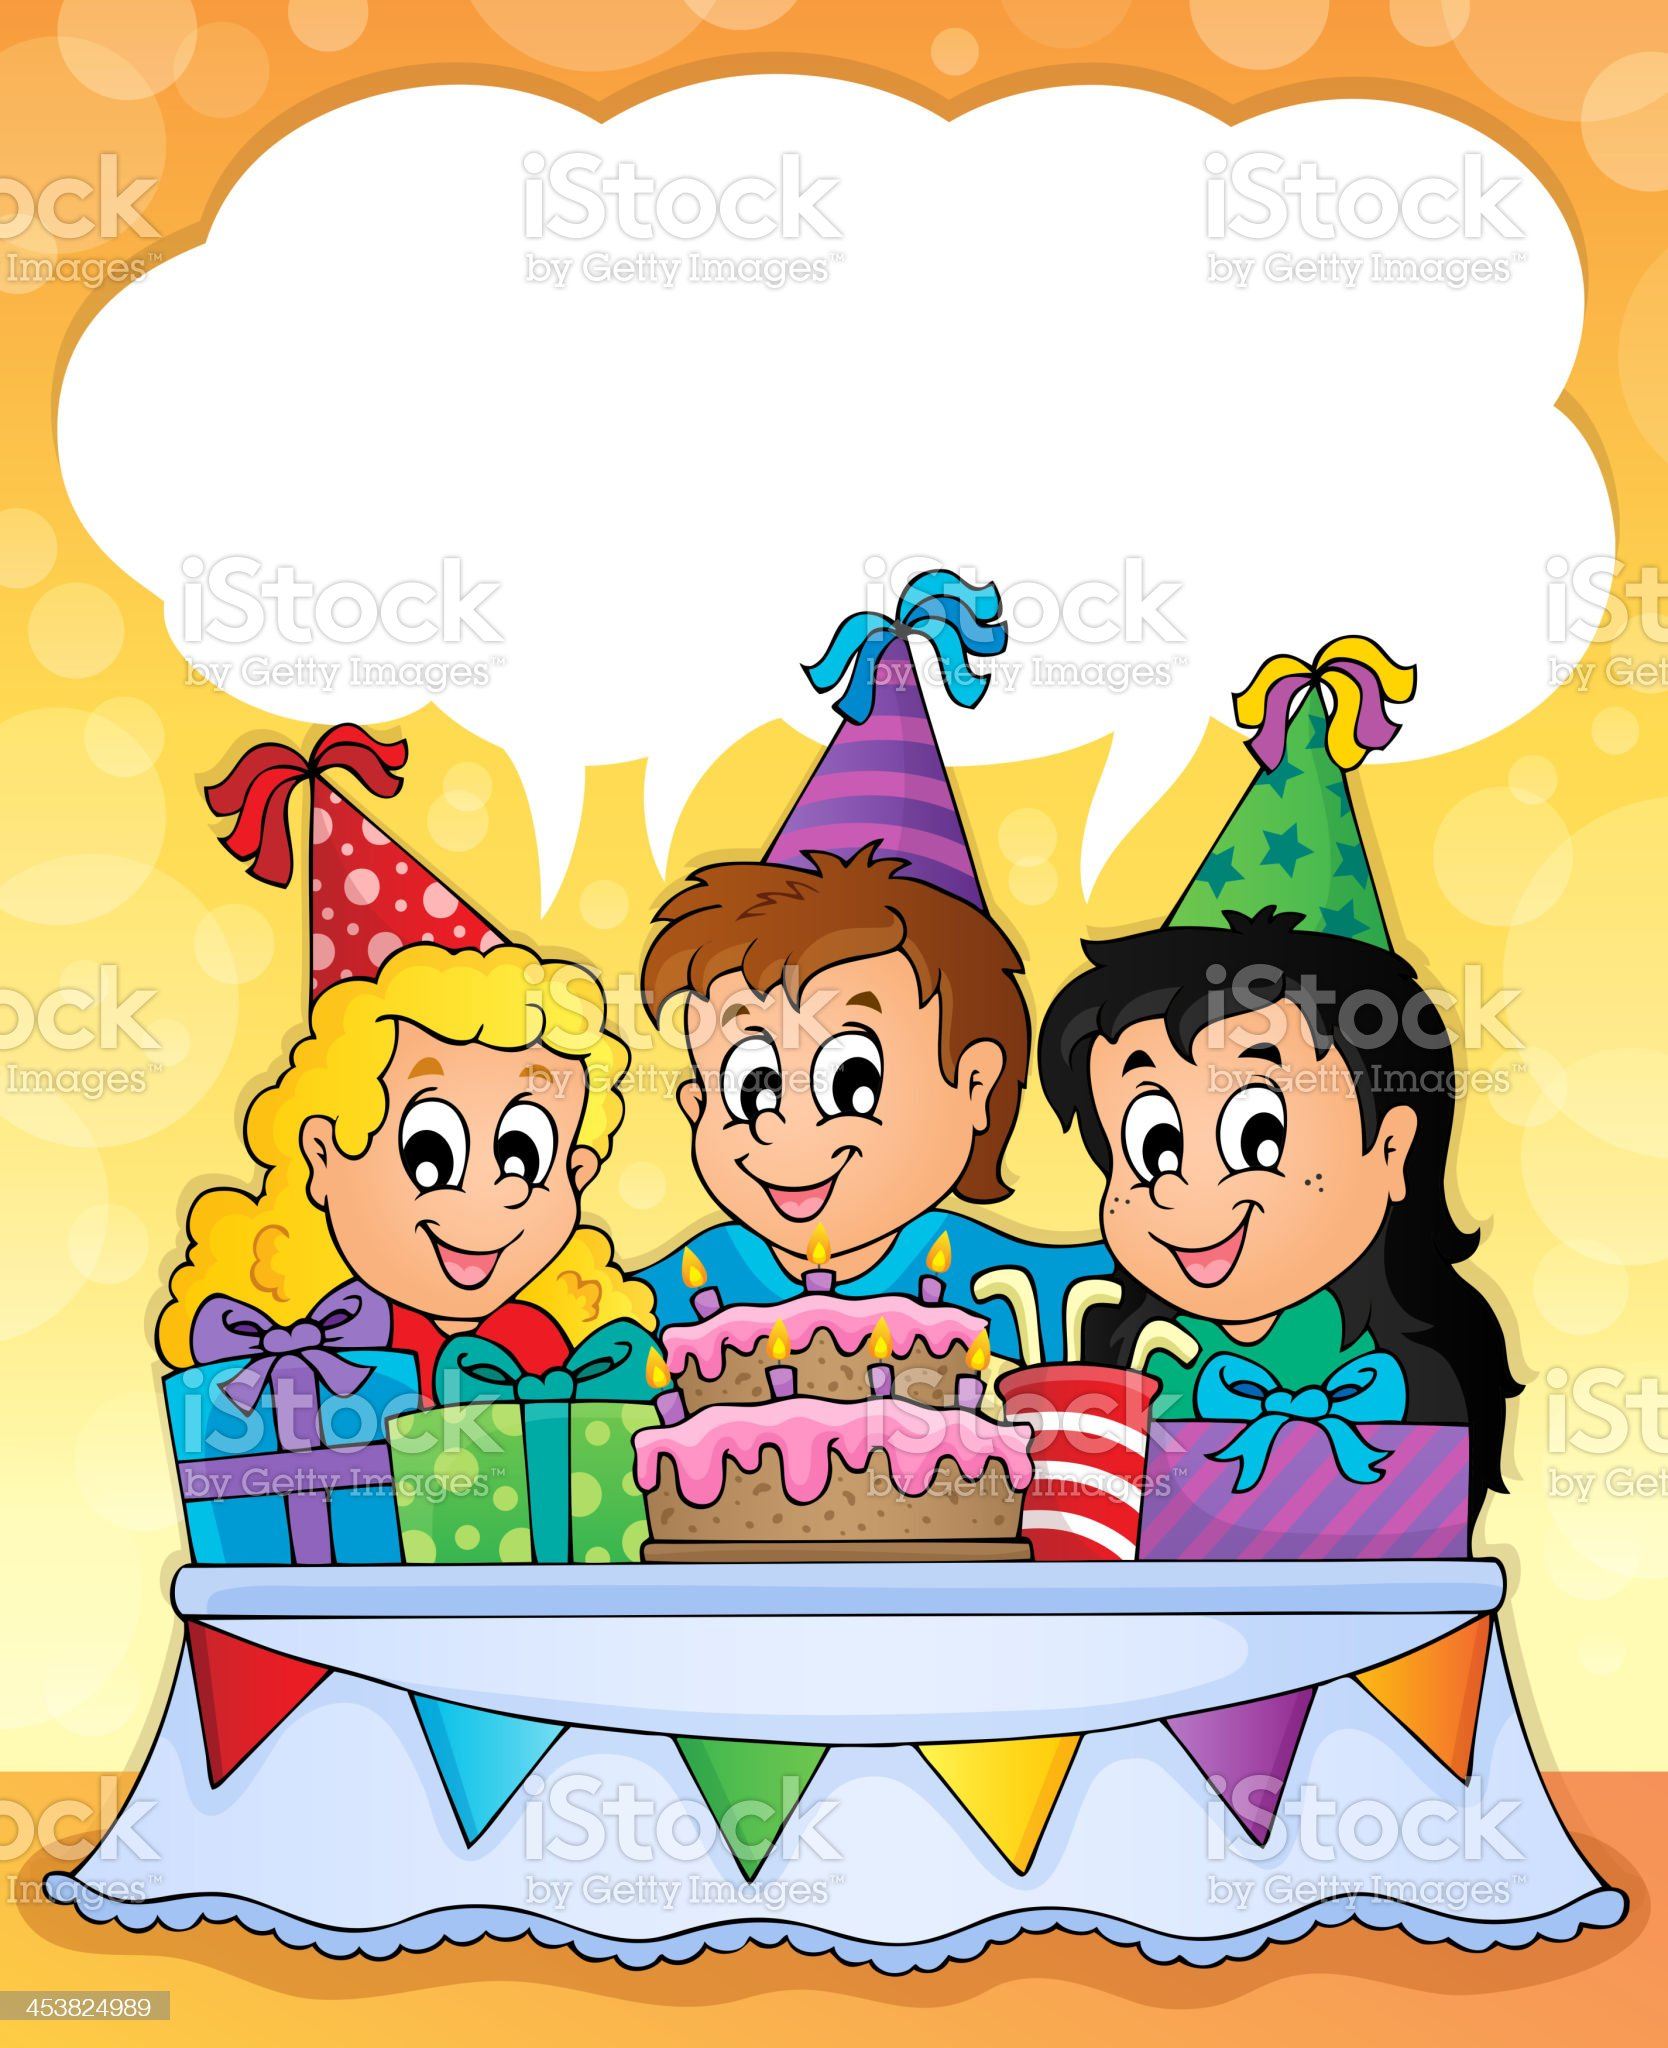 Kids party theme image 2 royalty-free stock vector art